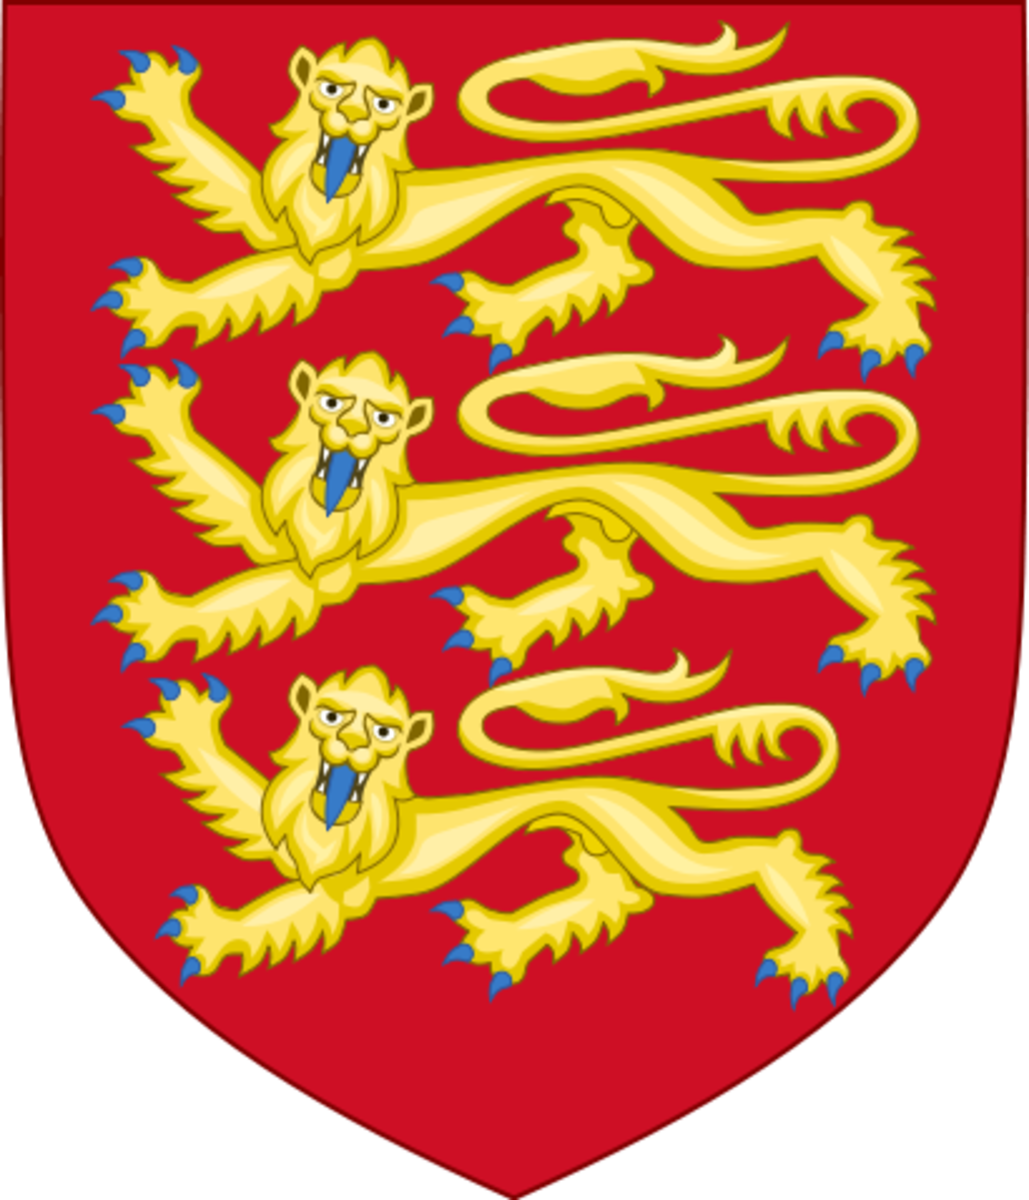 Royal Arms of the House of Plantagenet